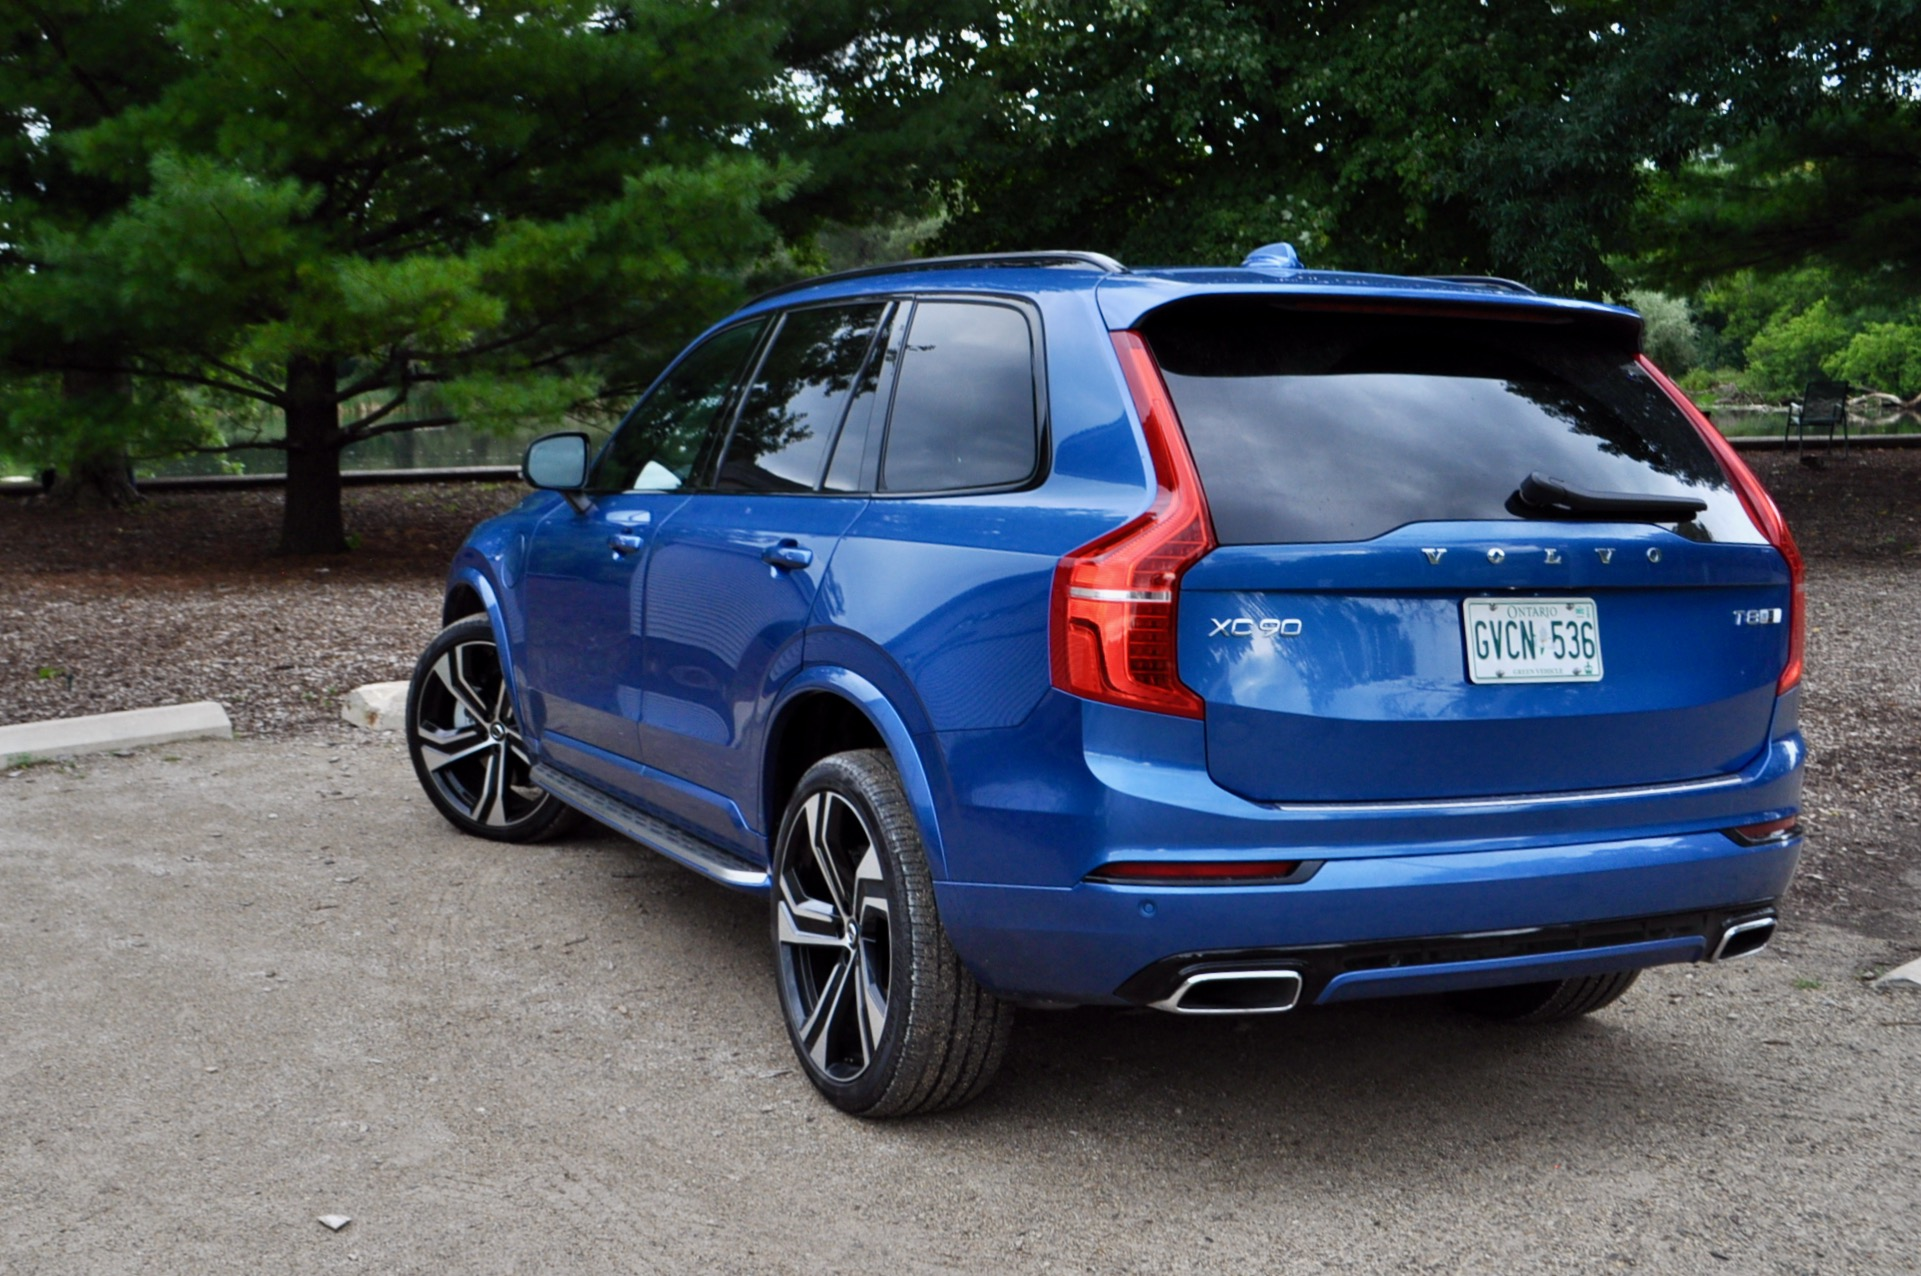 Review 2020 Volvo XC90 T8